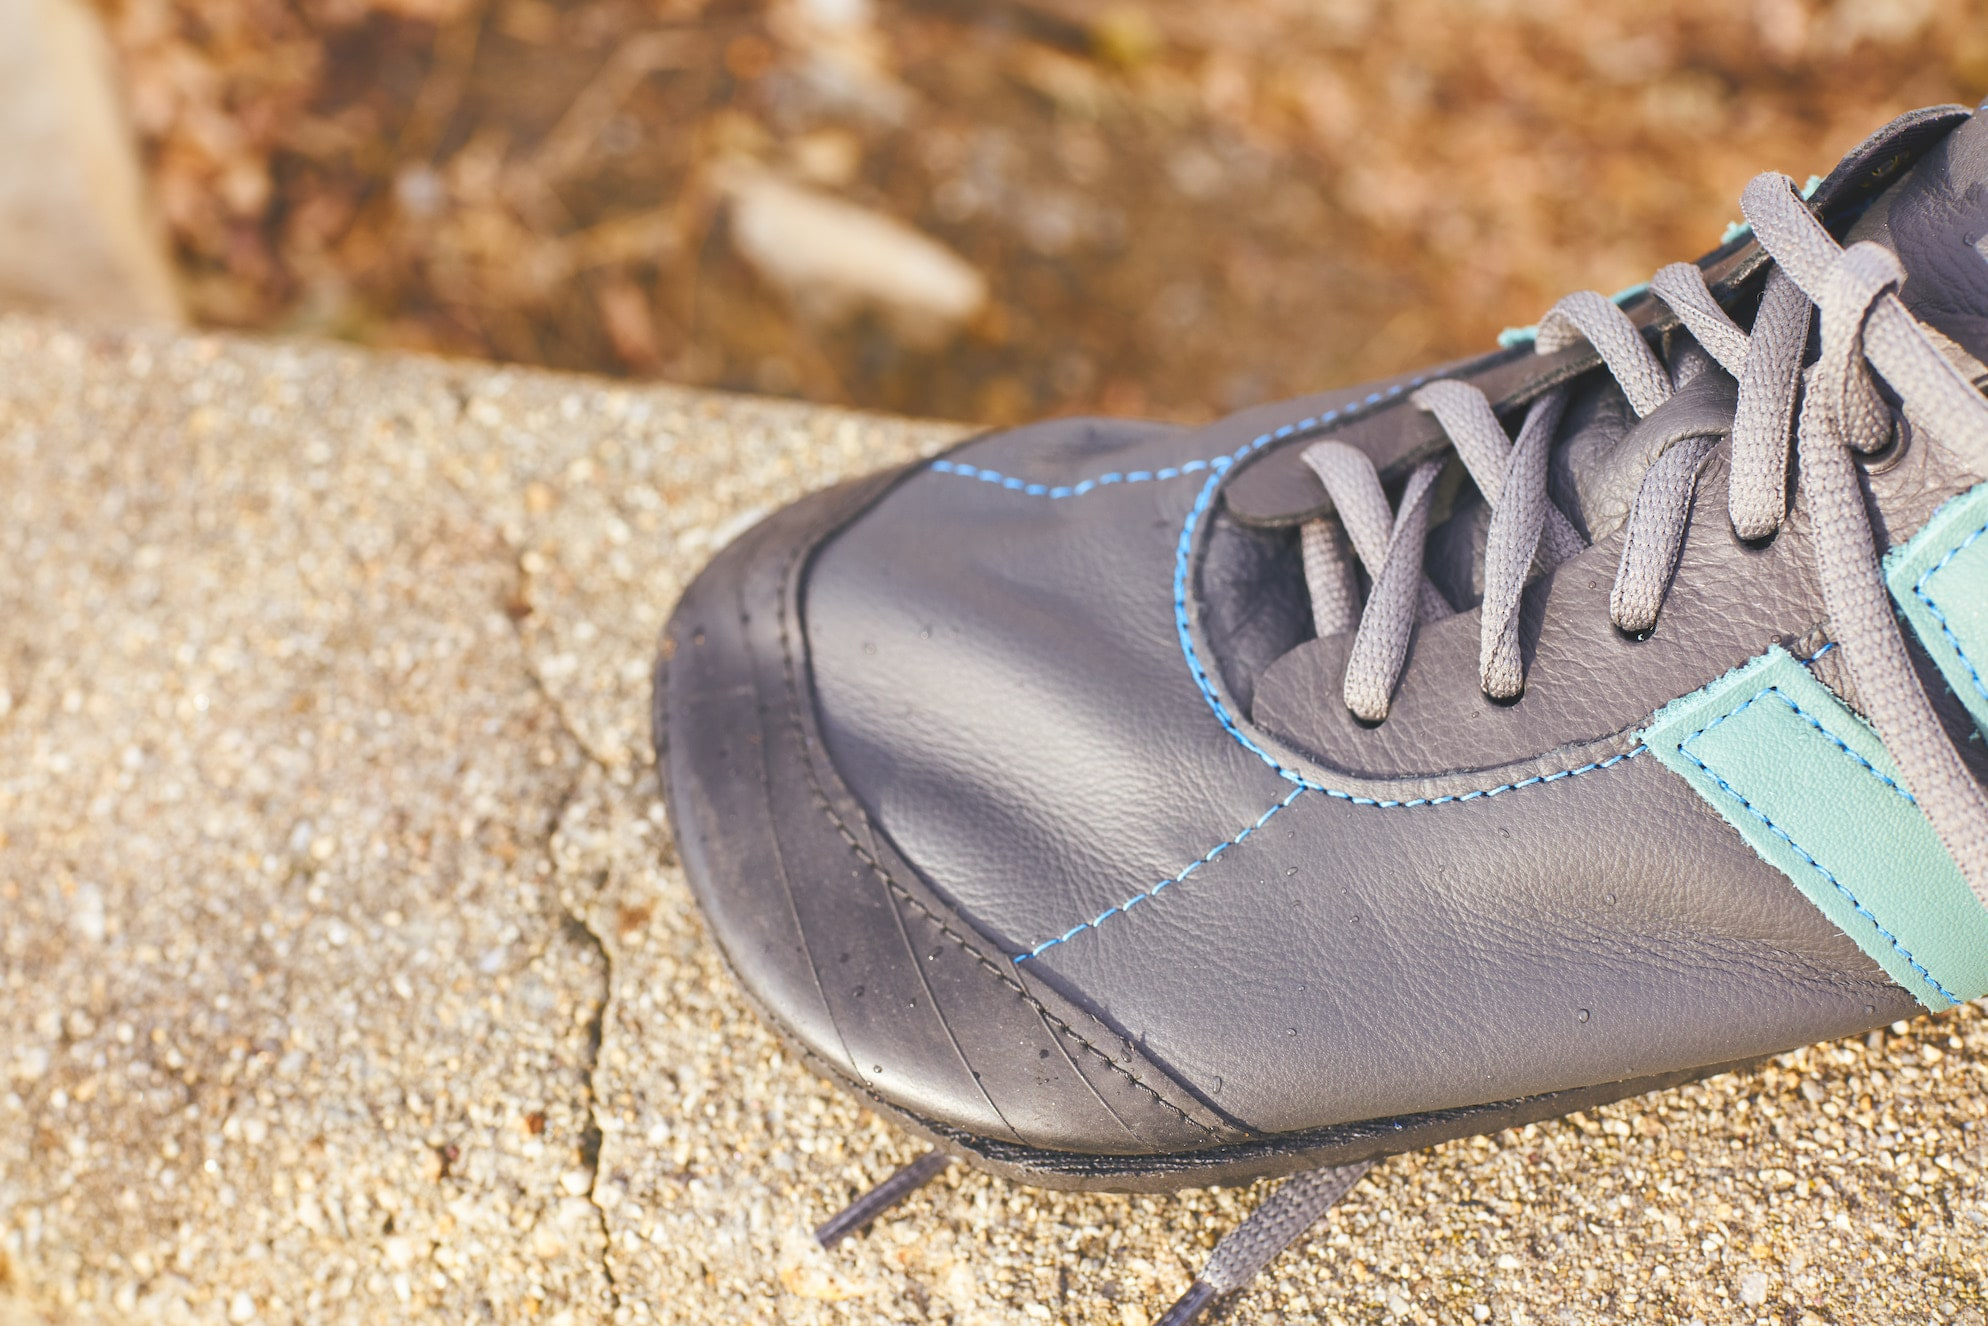 The upcycled bike tire toecap provides good protection, while maintaining flexibility